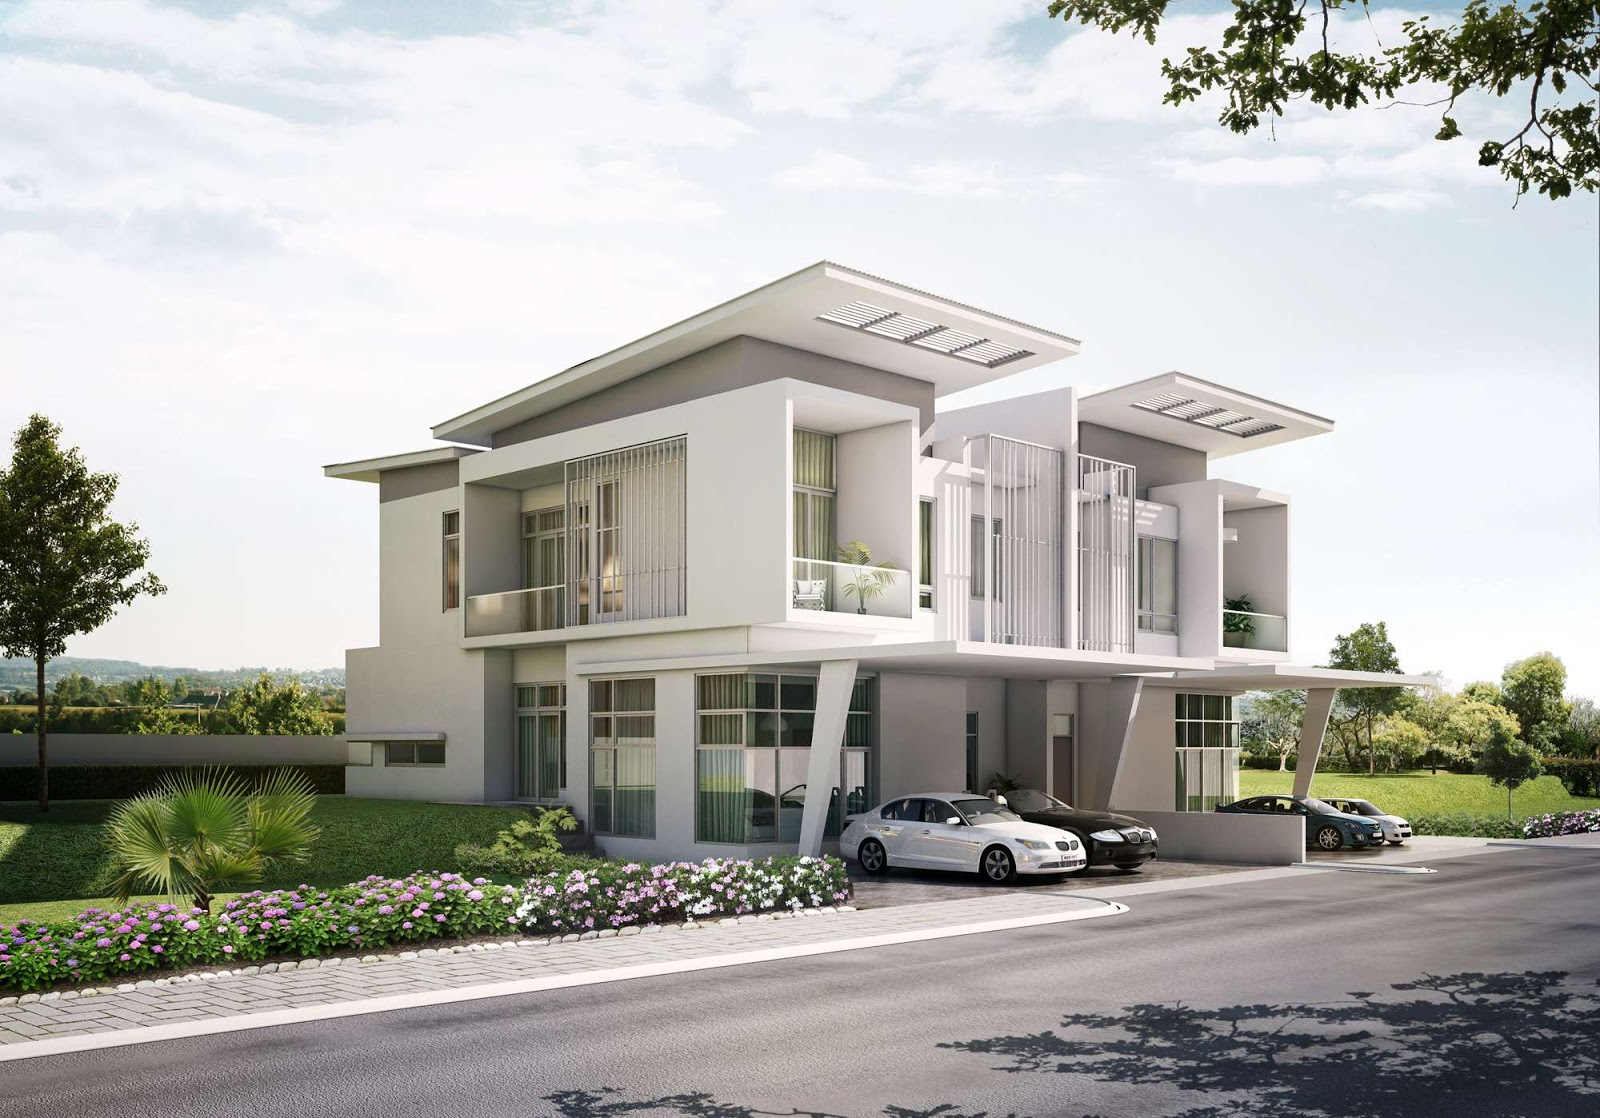 New home designs latest singapore modern homes exterior for New home exterior design